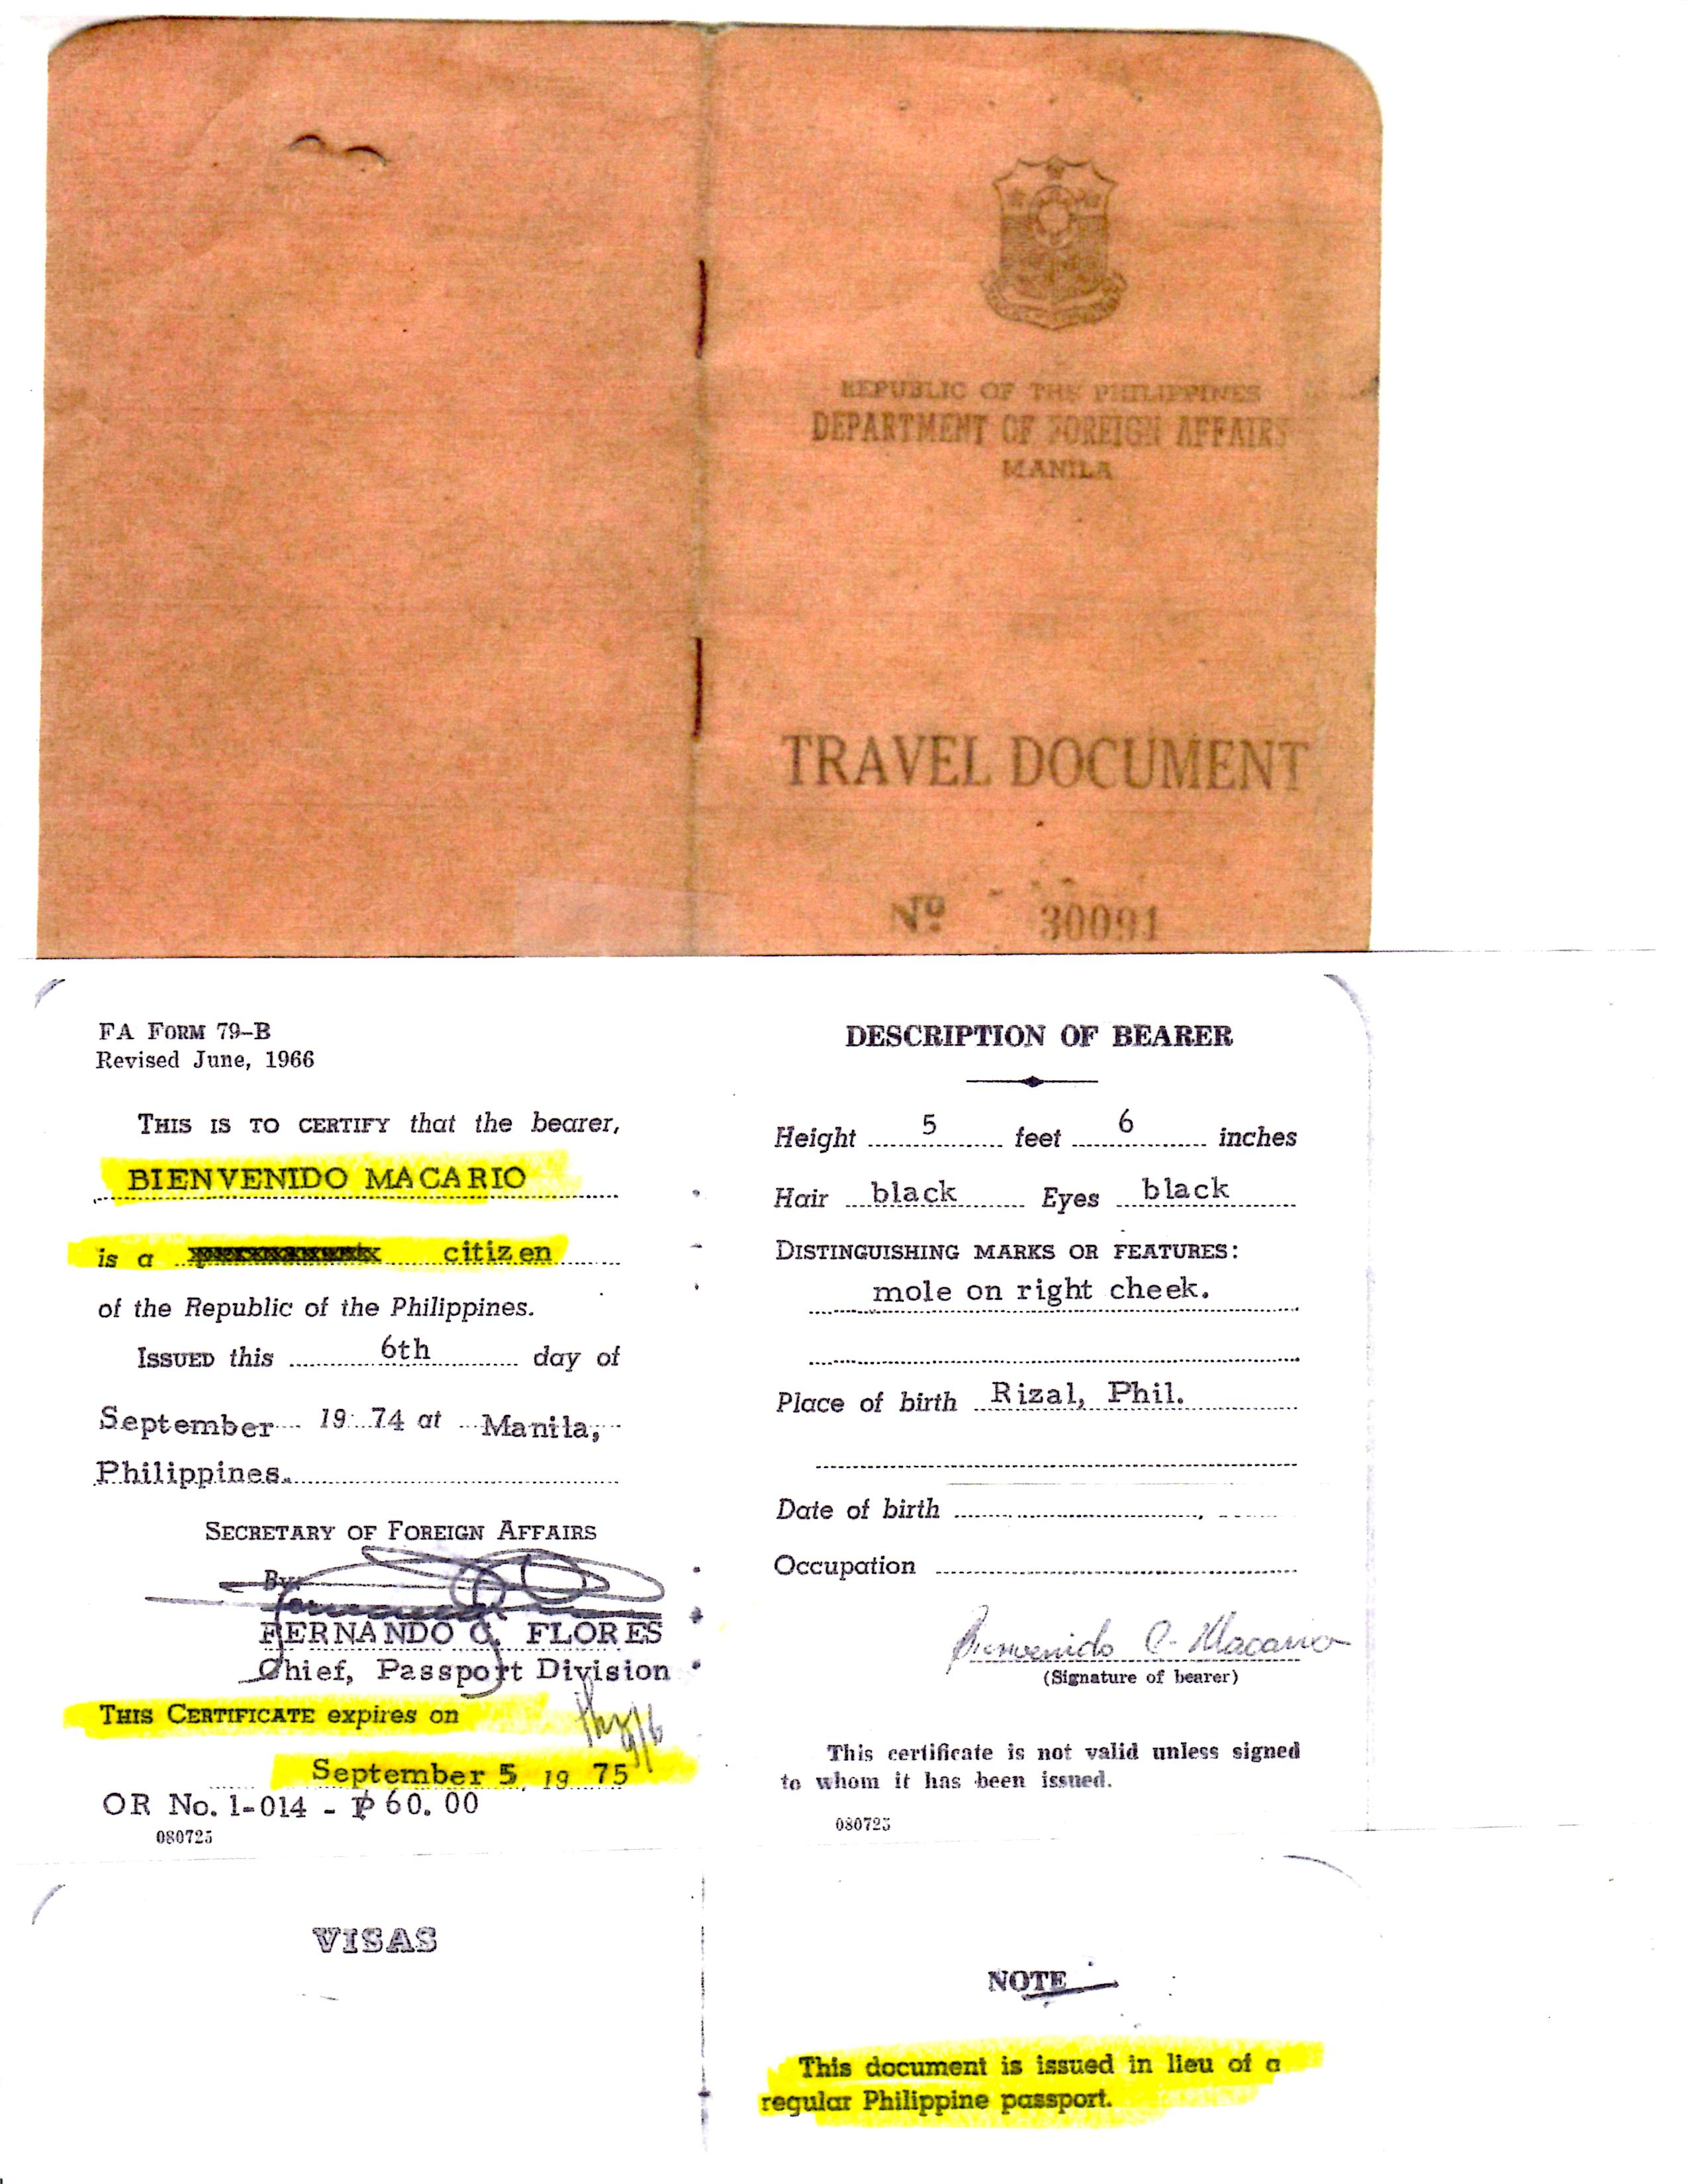 travel-document-initially-stamped-resident-not-citizen-of-the-philippines